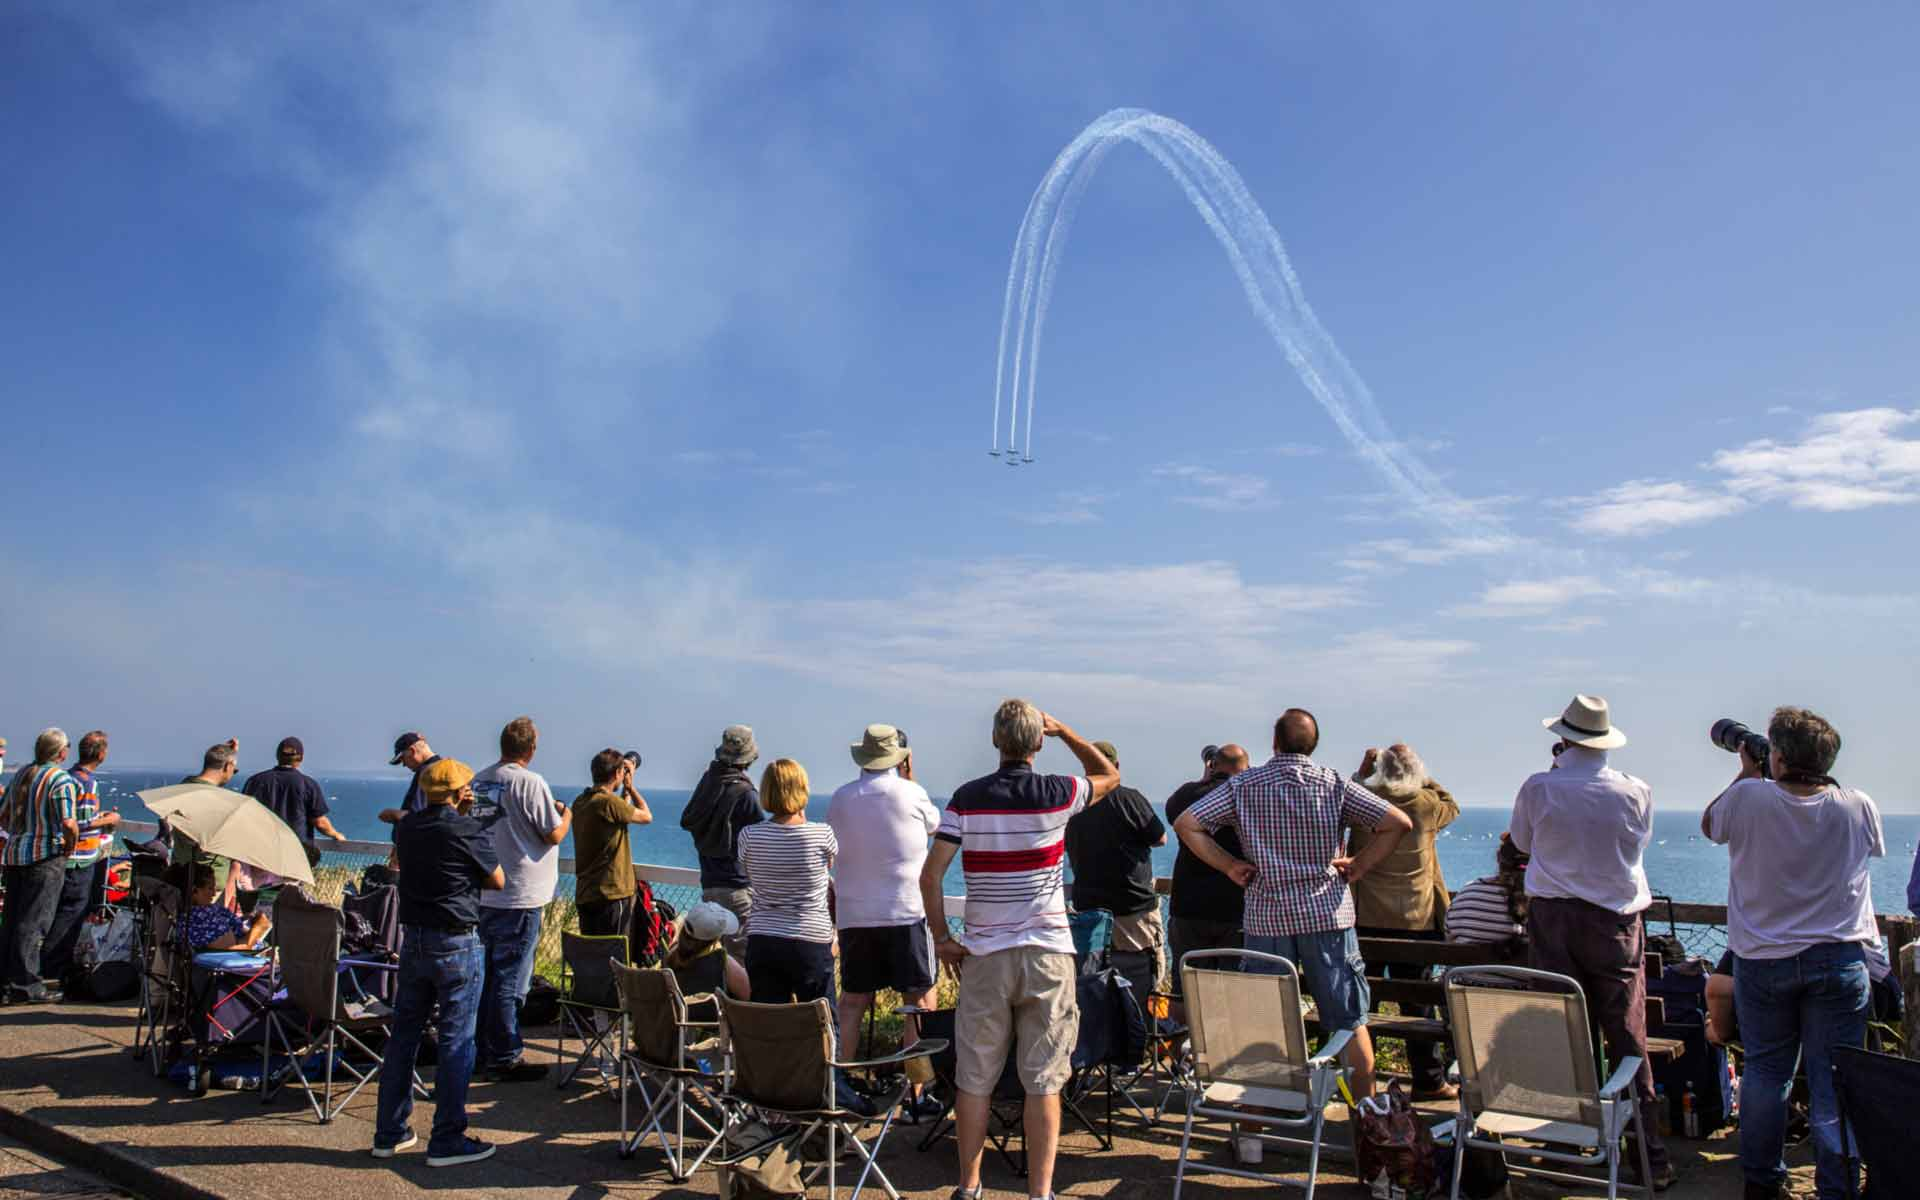 Planes performing whilst people watch and snap photos form the overcliff